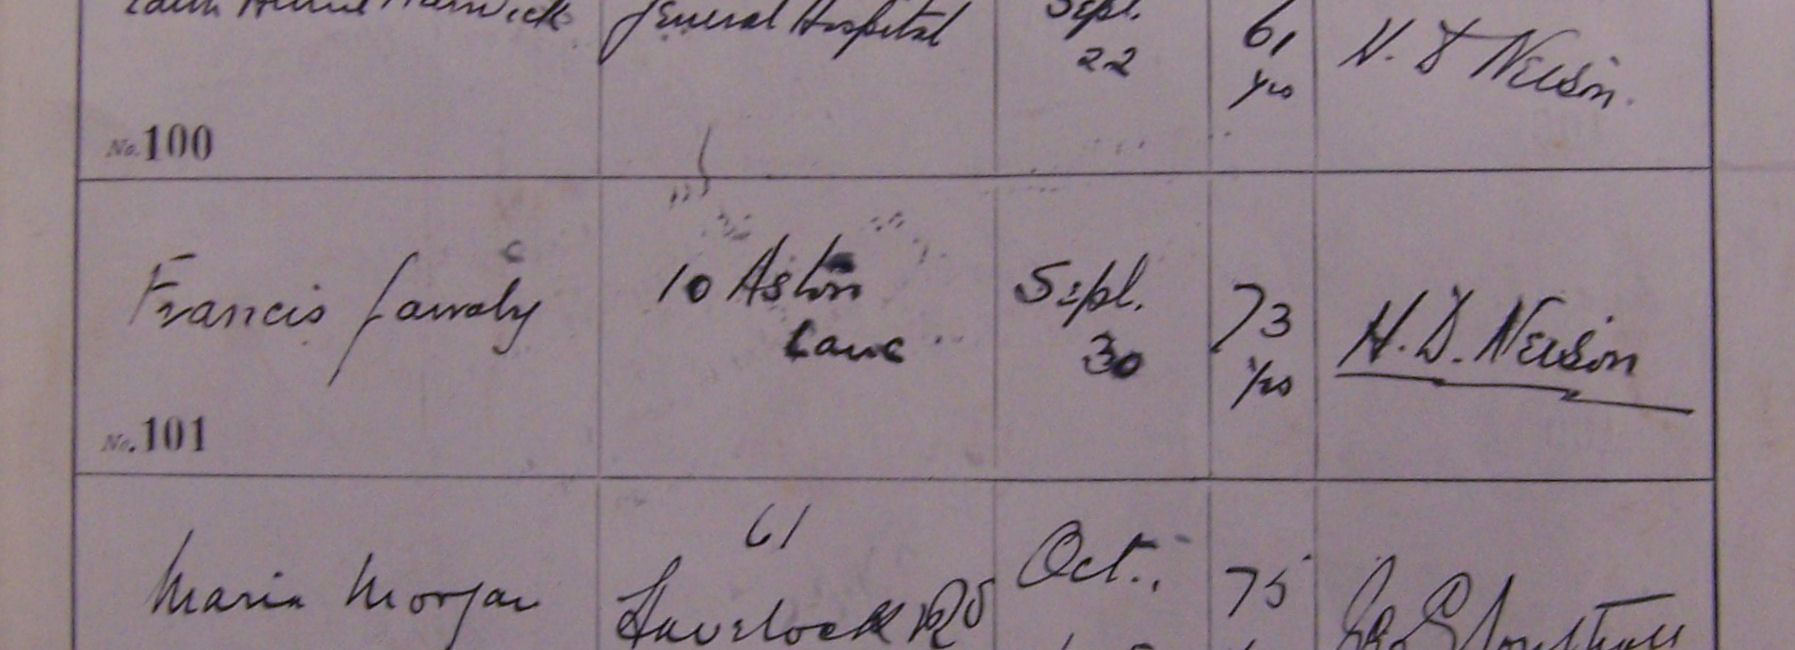 Francis Garraty Death Register Birmingham Library Died Aged 73 10 Aston Lane, Aston, Birmingham